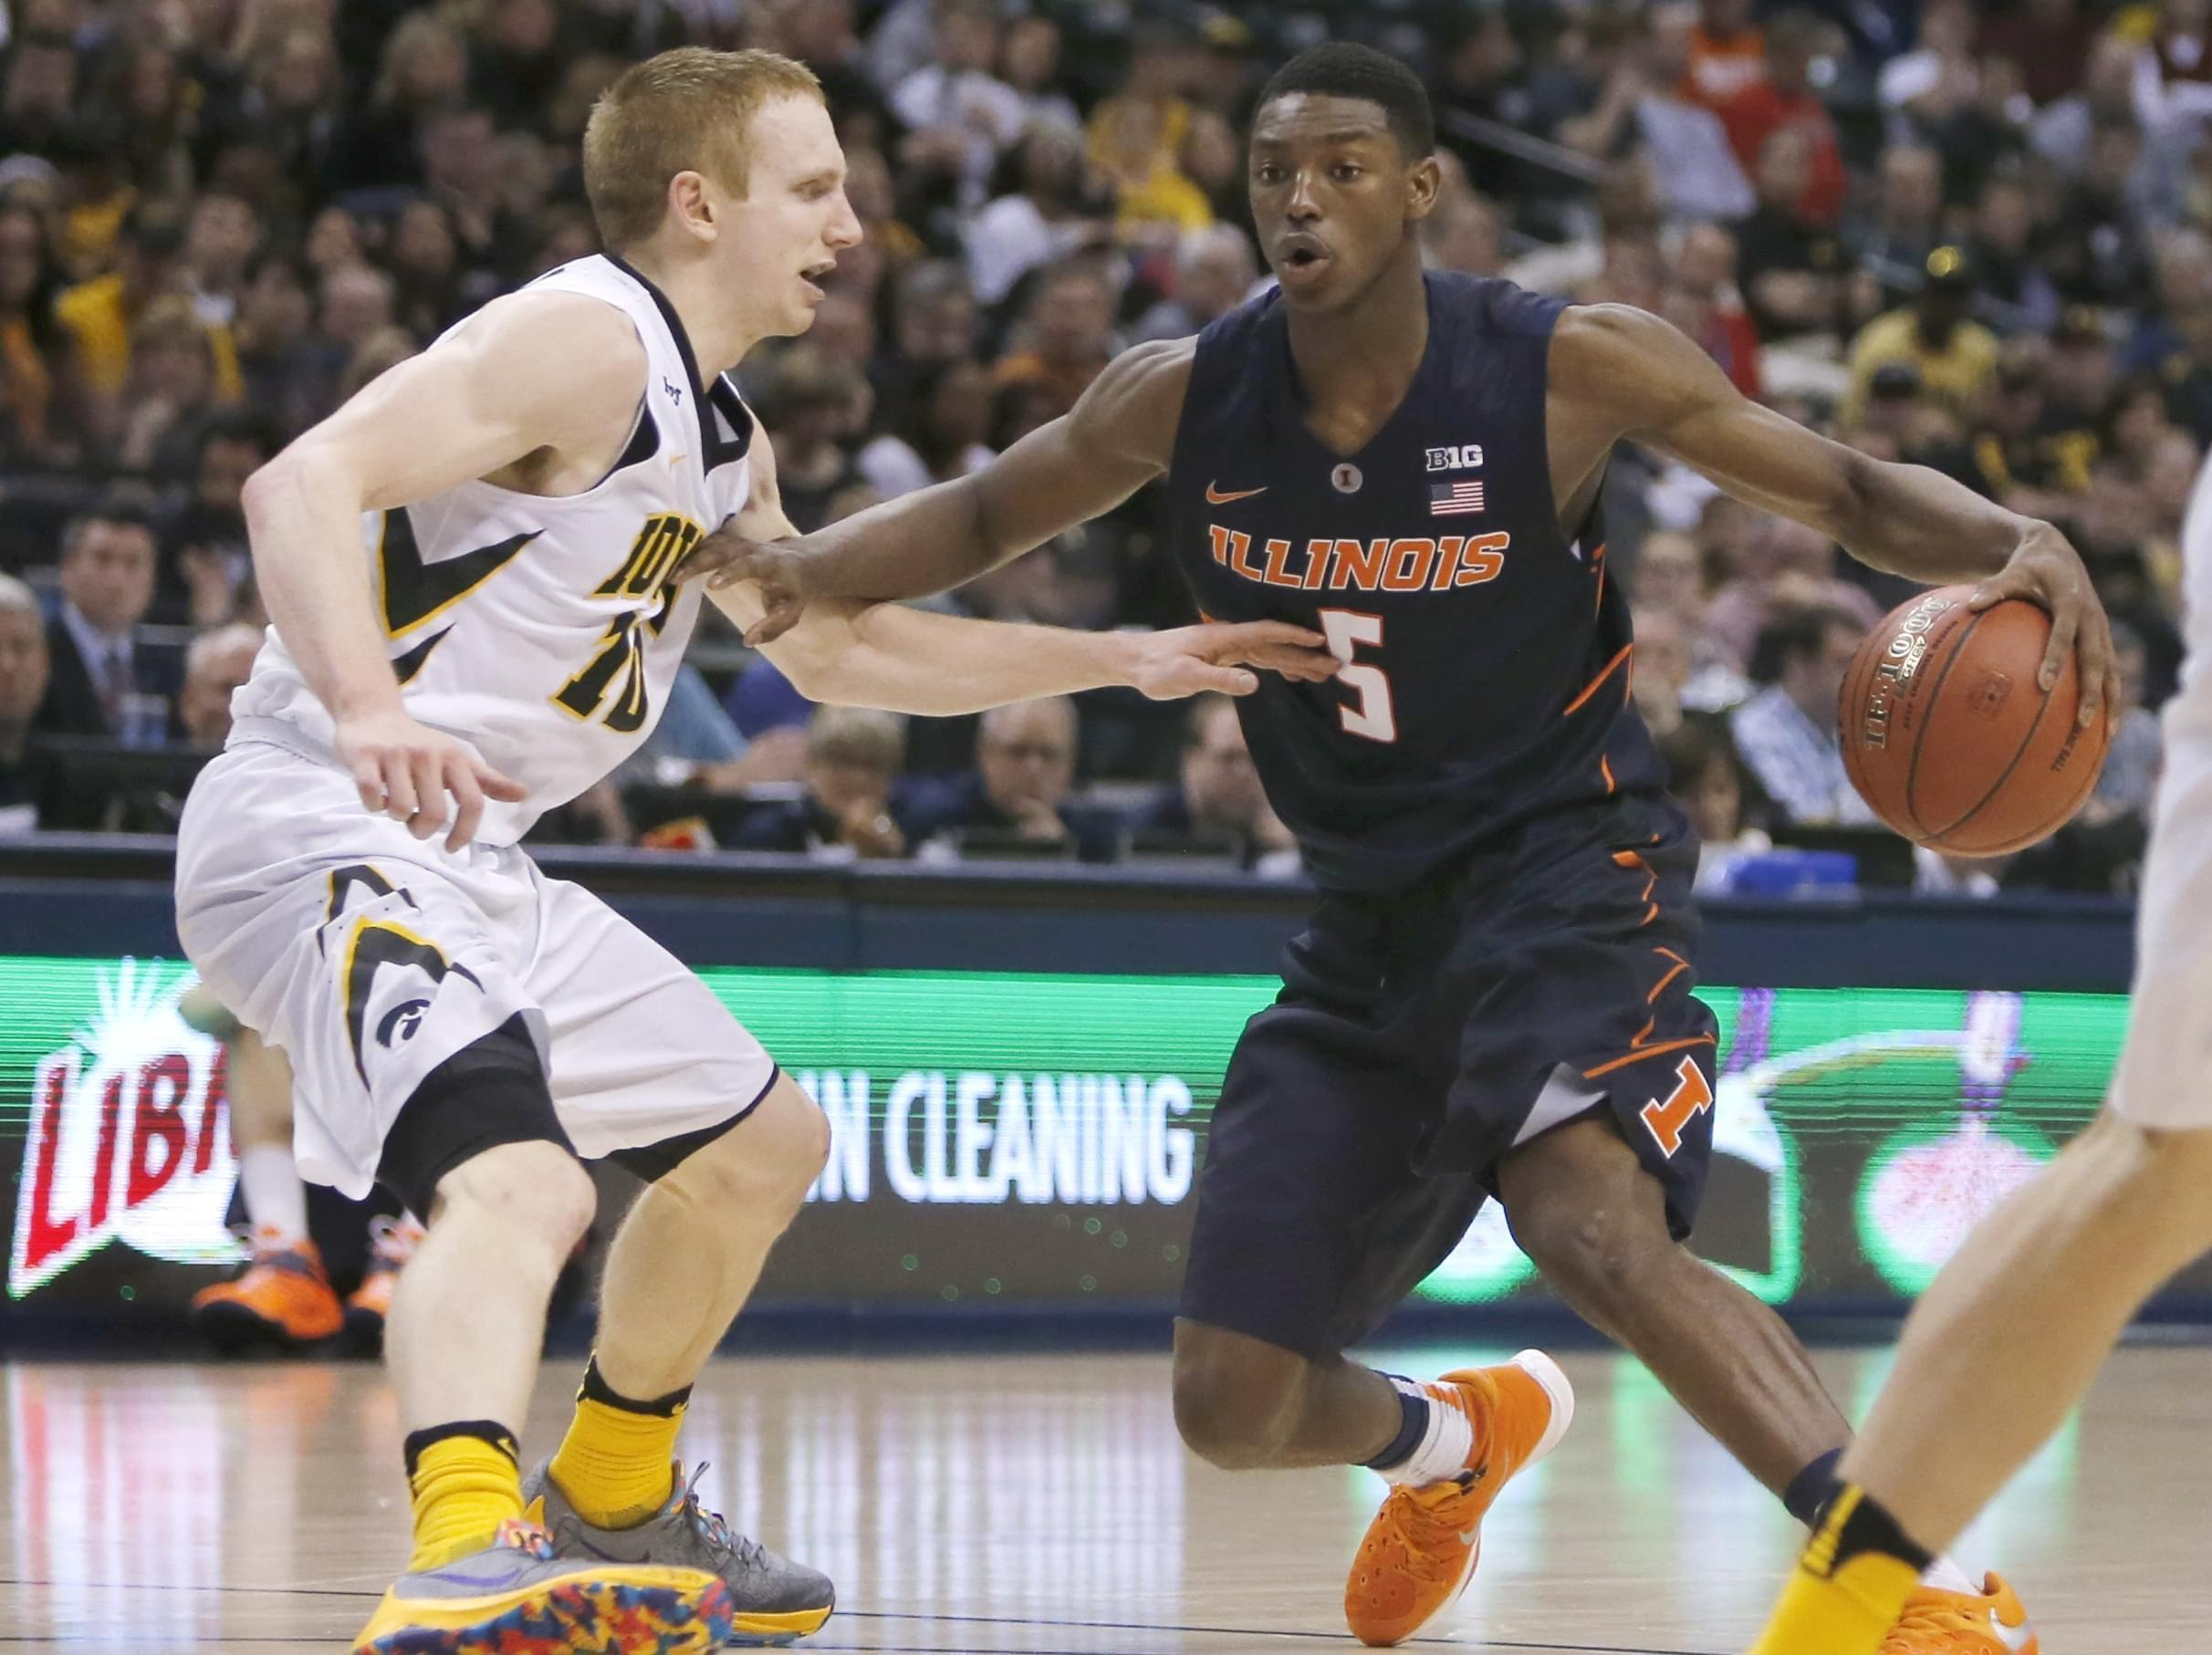 Illinois' Jalen Coleman-Lands (5) drives against Iowa's Mike Gesell (10) in the second half of an NCAA college basketball game at the Big Ten Conference tournament Thursday.